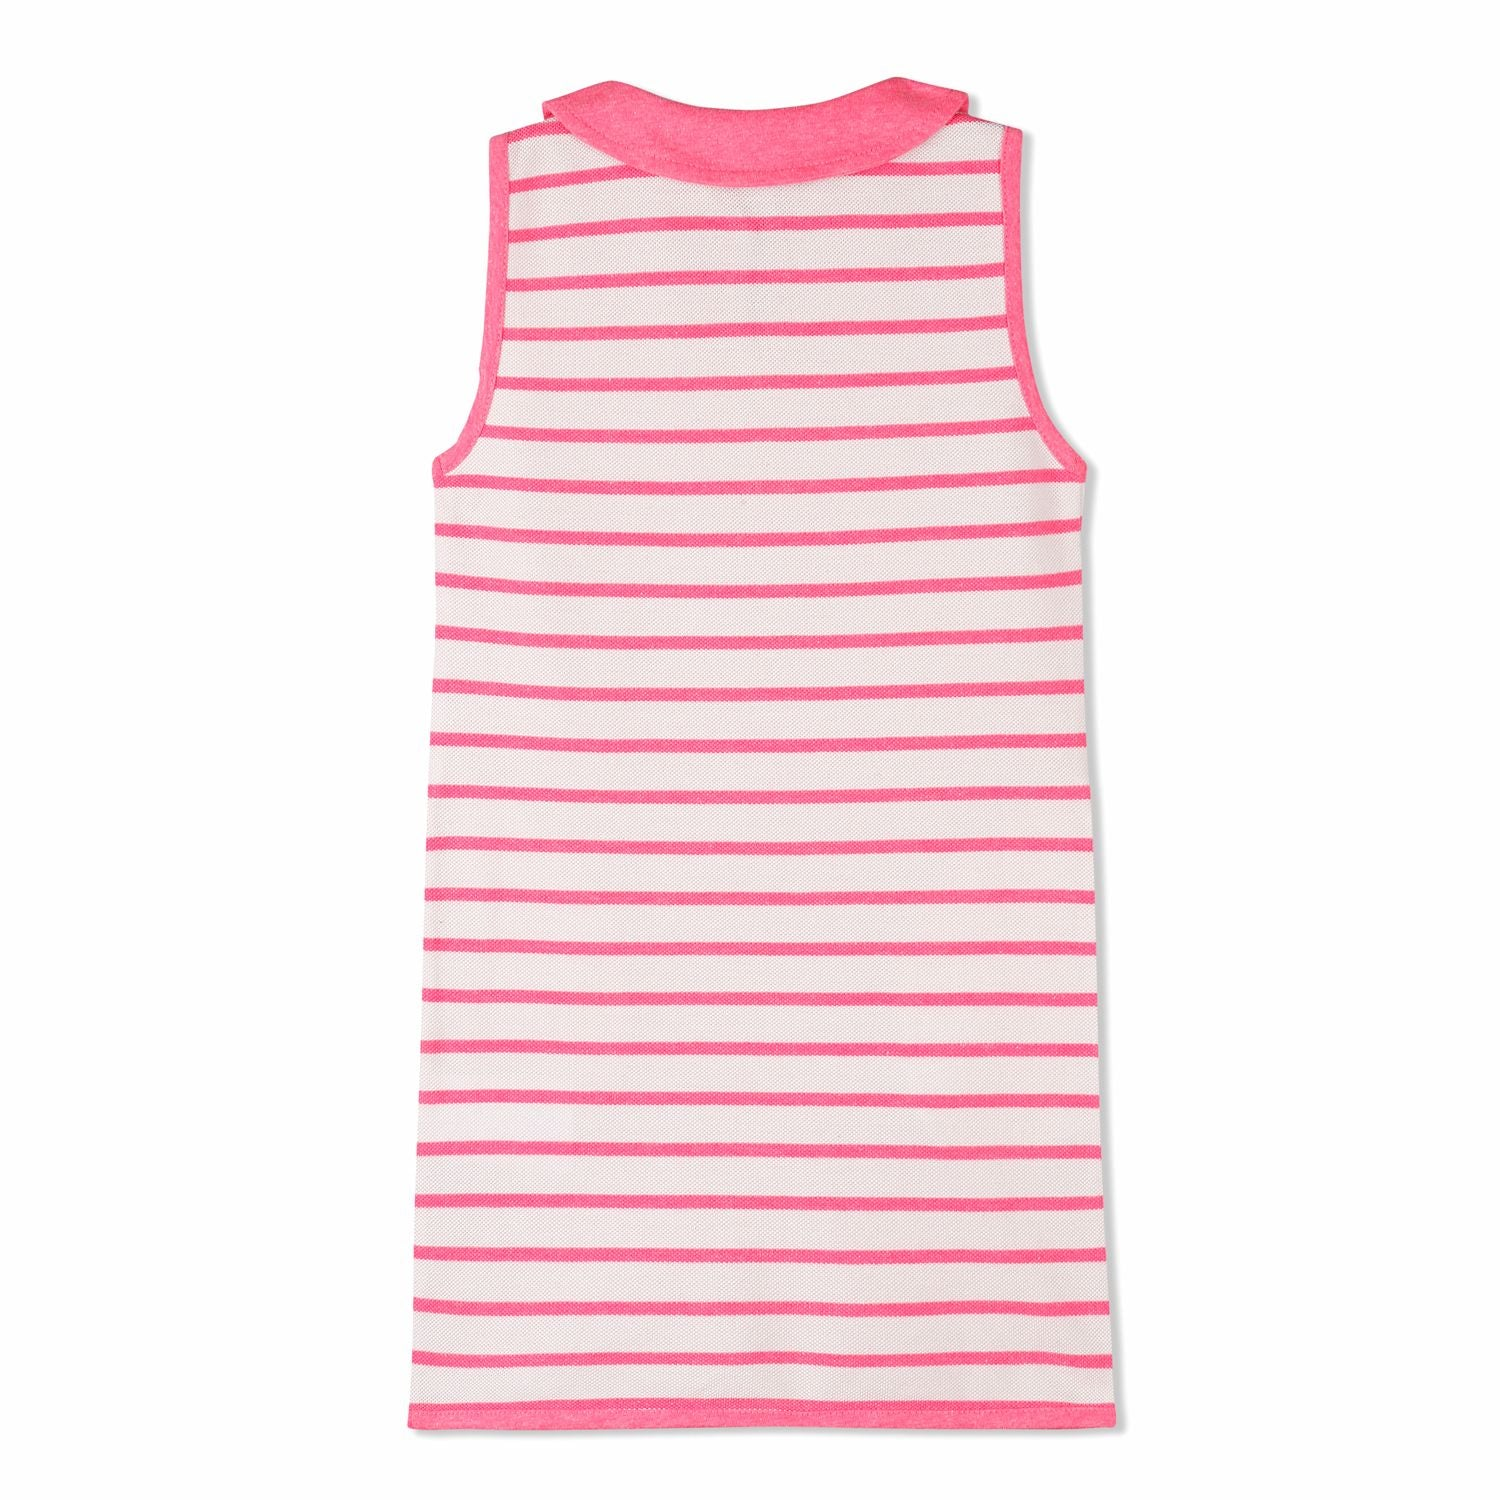 Petricia Pique Dress for Girls